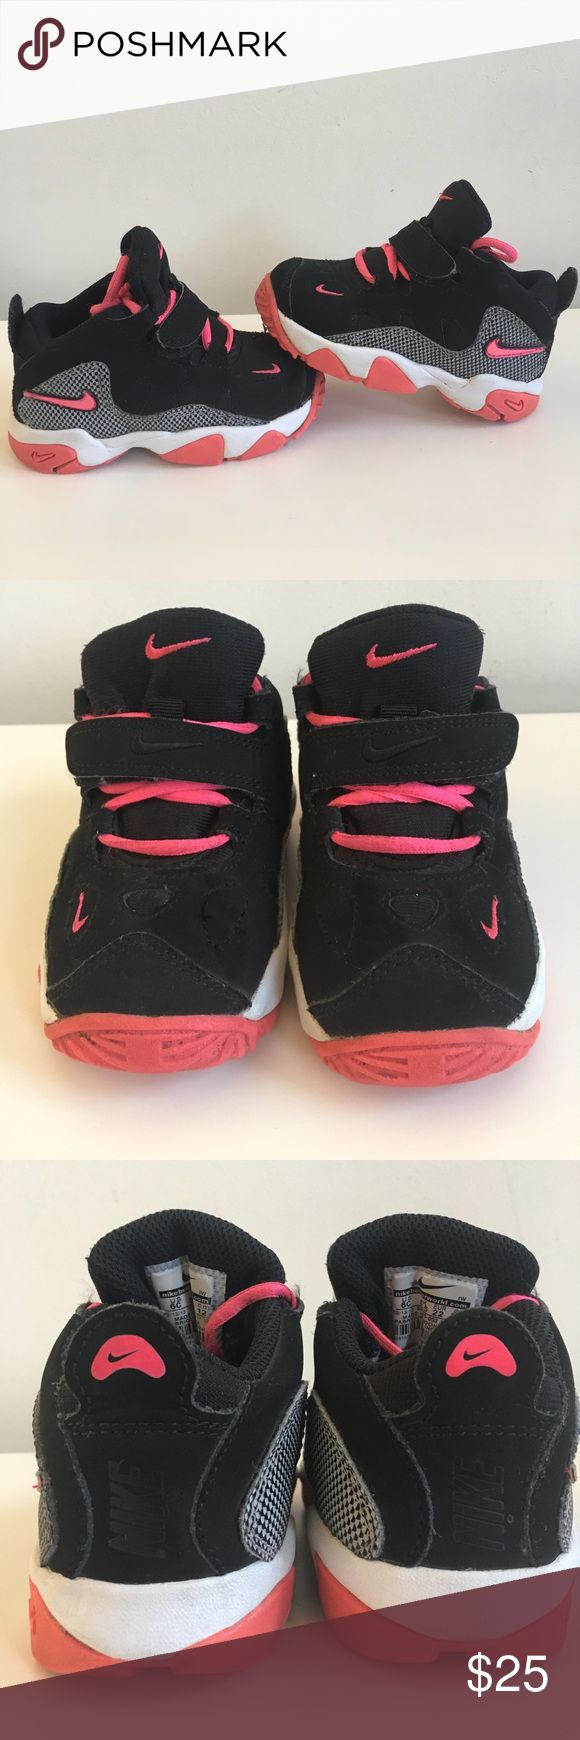 AIR NIKE TURF RAIDER SZ 6C ! (Girls) In good condition. Was bought years ago child is 6 now. Doesn't come with Box. Never been worn for that long . I didn't try to clean it, Taken just as is. Any questions feel free to ask :) tried looking for a pair of these online to match but they're sold out . Nike Shoes Sneakers